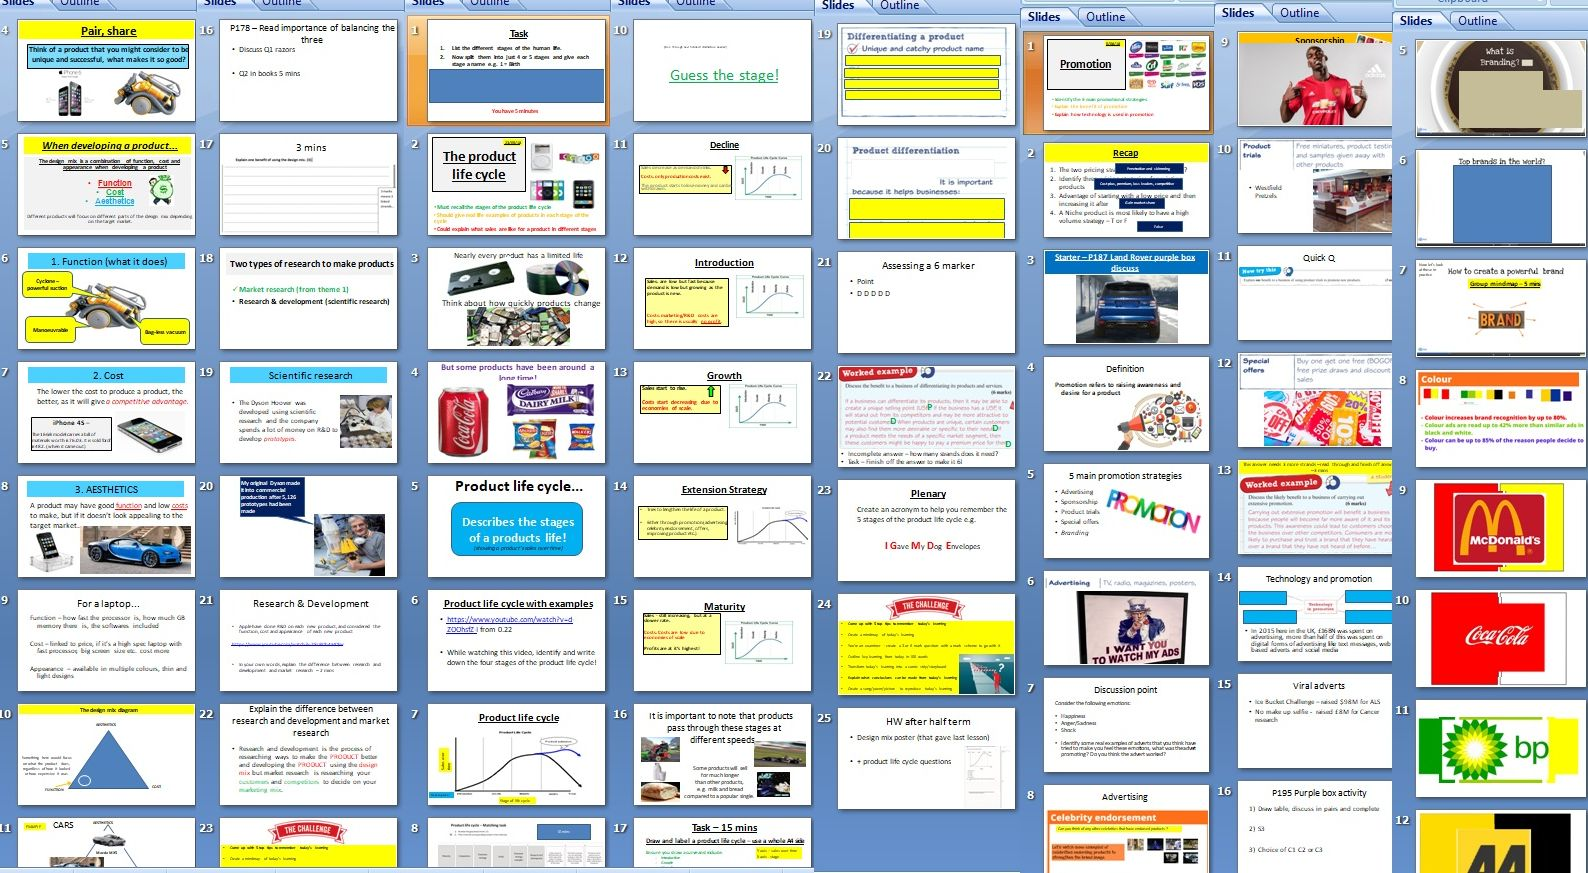 Edexcel GCSE Business (9-1) new spec - Theme 2 - 2.2 Making Marketing Decisions